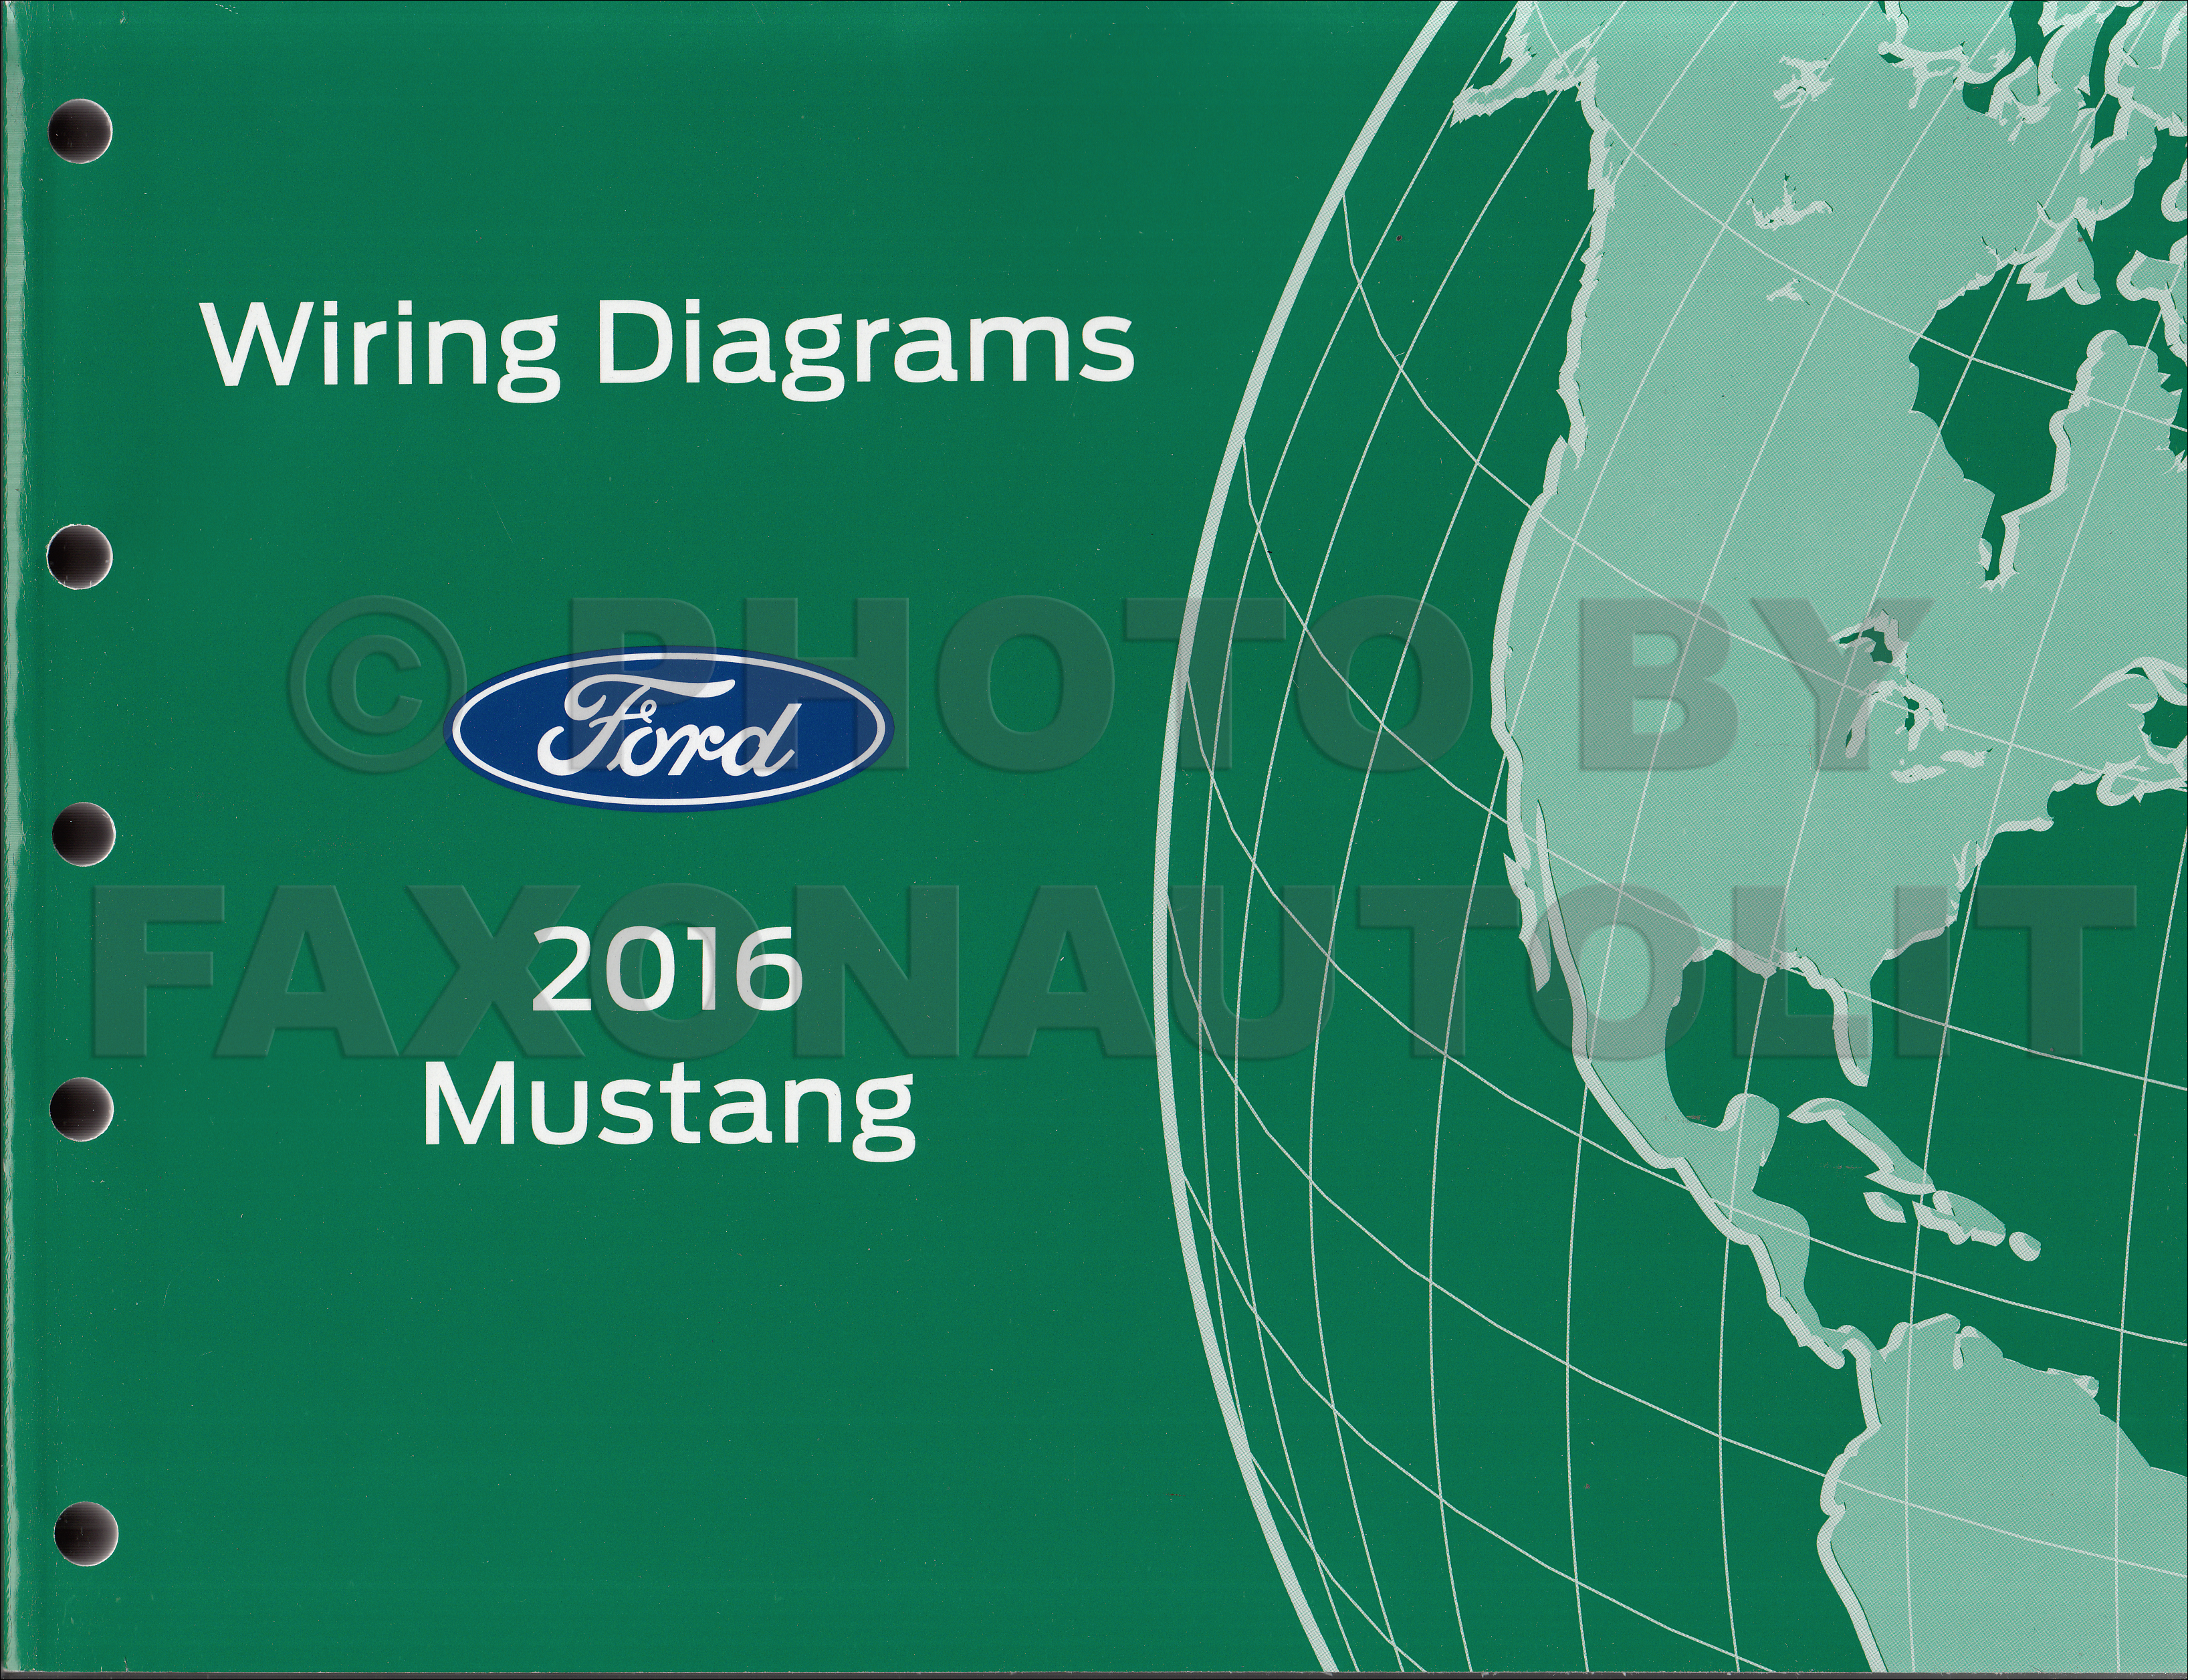 2016 Ford Mustang Wiring Diagram Manual Original  Mustang Wiring Harness on 2003 mustang wiring harness, 1964 mustang wiring harness, 1989 mustang wiring harness, 2004 mustang wiring harness, 2000 mustang wiring harness, 1994 mustang wiring harness, 1965 mustang wiring harness, 1969 mustang wiring harness, 1986 mustang wiring harness, 1991 mustang wiring harness, 1973 mustang wiring harness, 1982 mustang wiring harness, 1970 mustang wiring harness, 2001 mustang wiring harness, 1988 mustang wiring harness, 1971 mustang wiring harness,